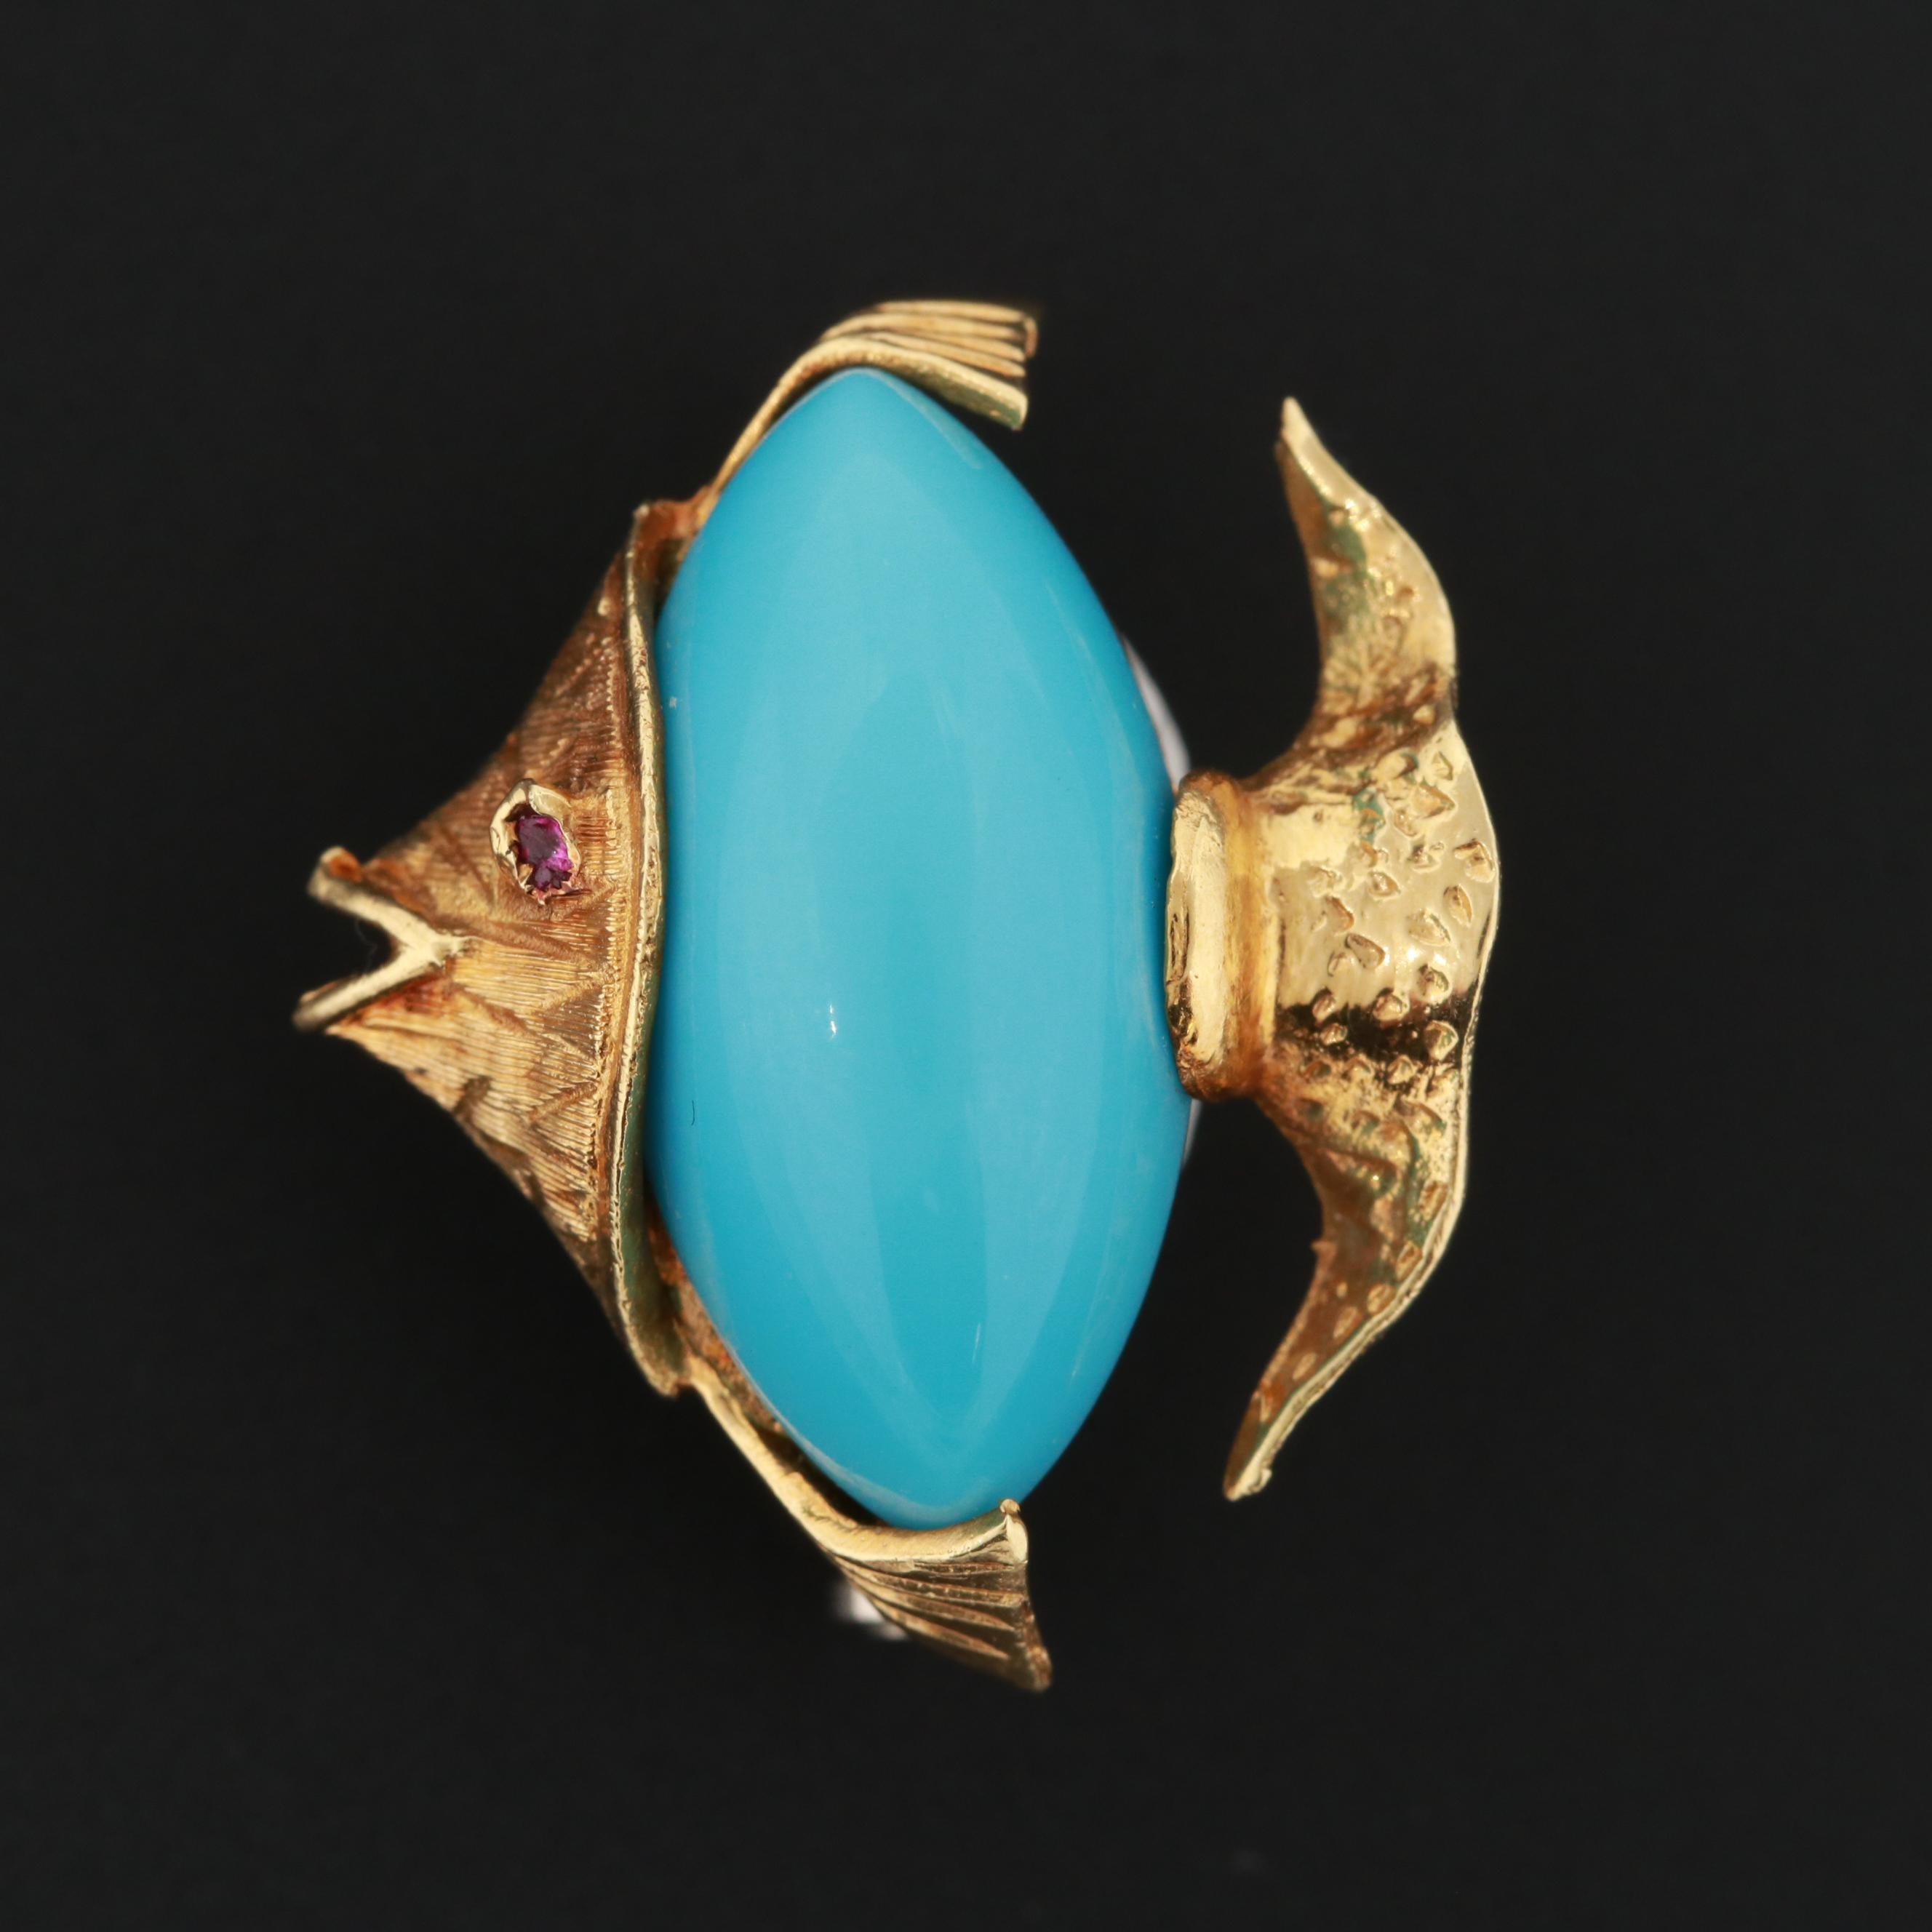 Corletto 18K Yellow Gold Fish Brooch